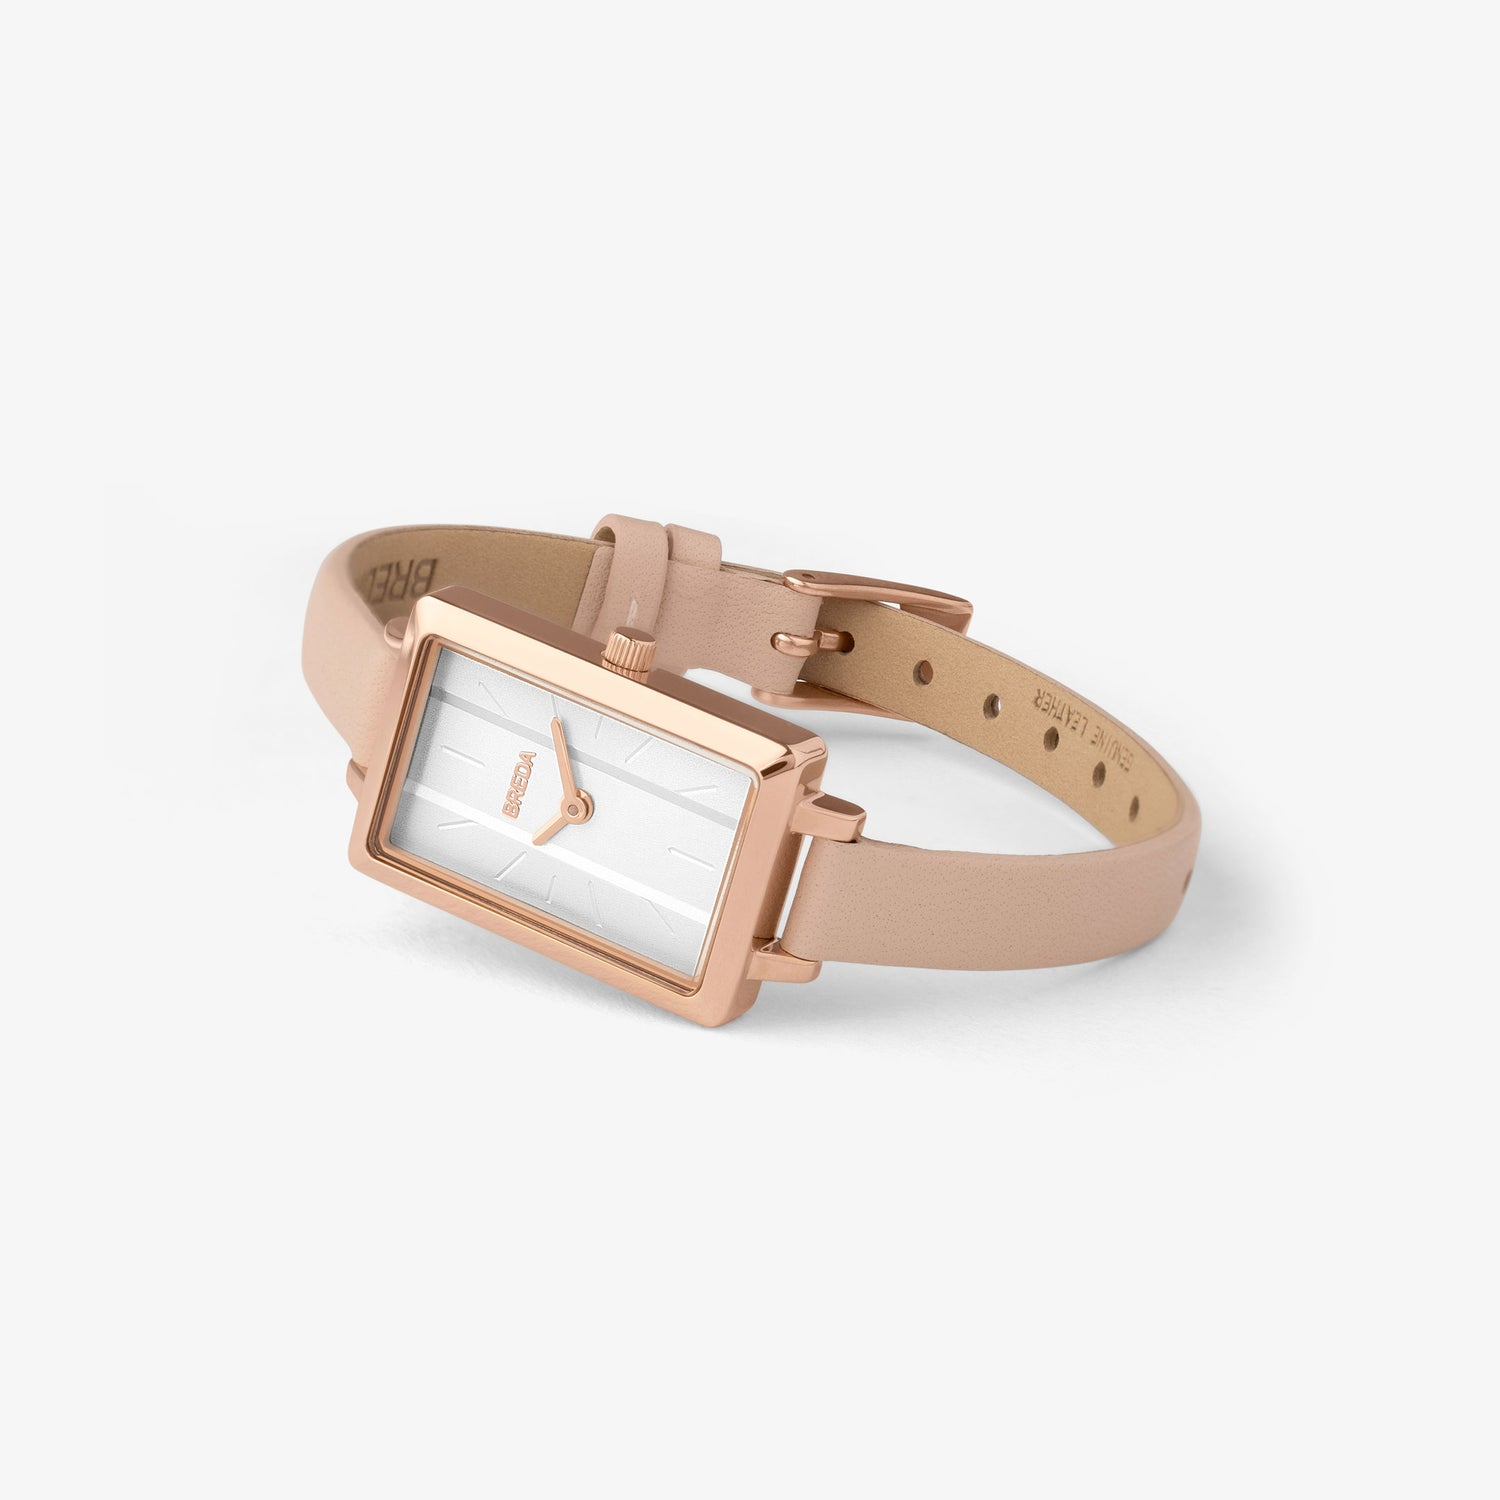 breda-eva-1738a-rose-gold-beige-watch-angle